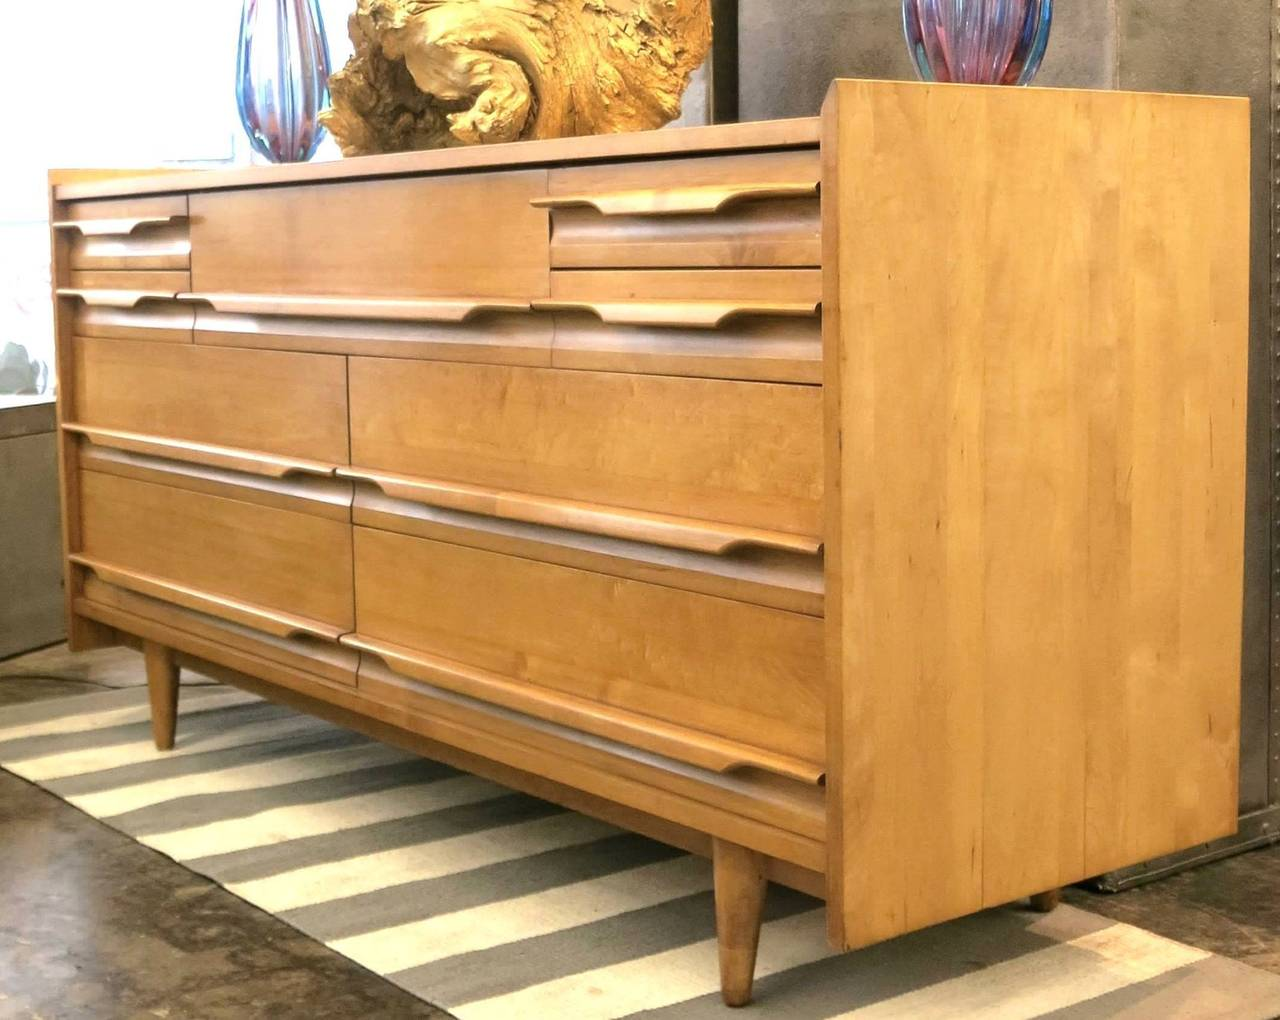 Crawford furniture mid century low dresser of solid maple circa 1950 at 1stdibs for Solid maple bedroom furniture